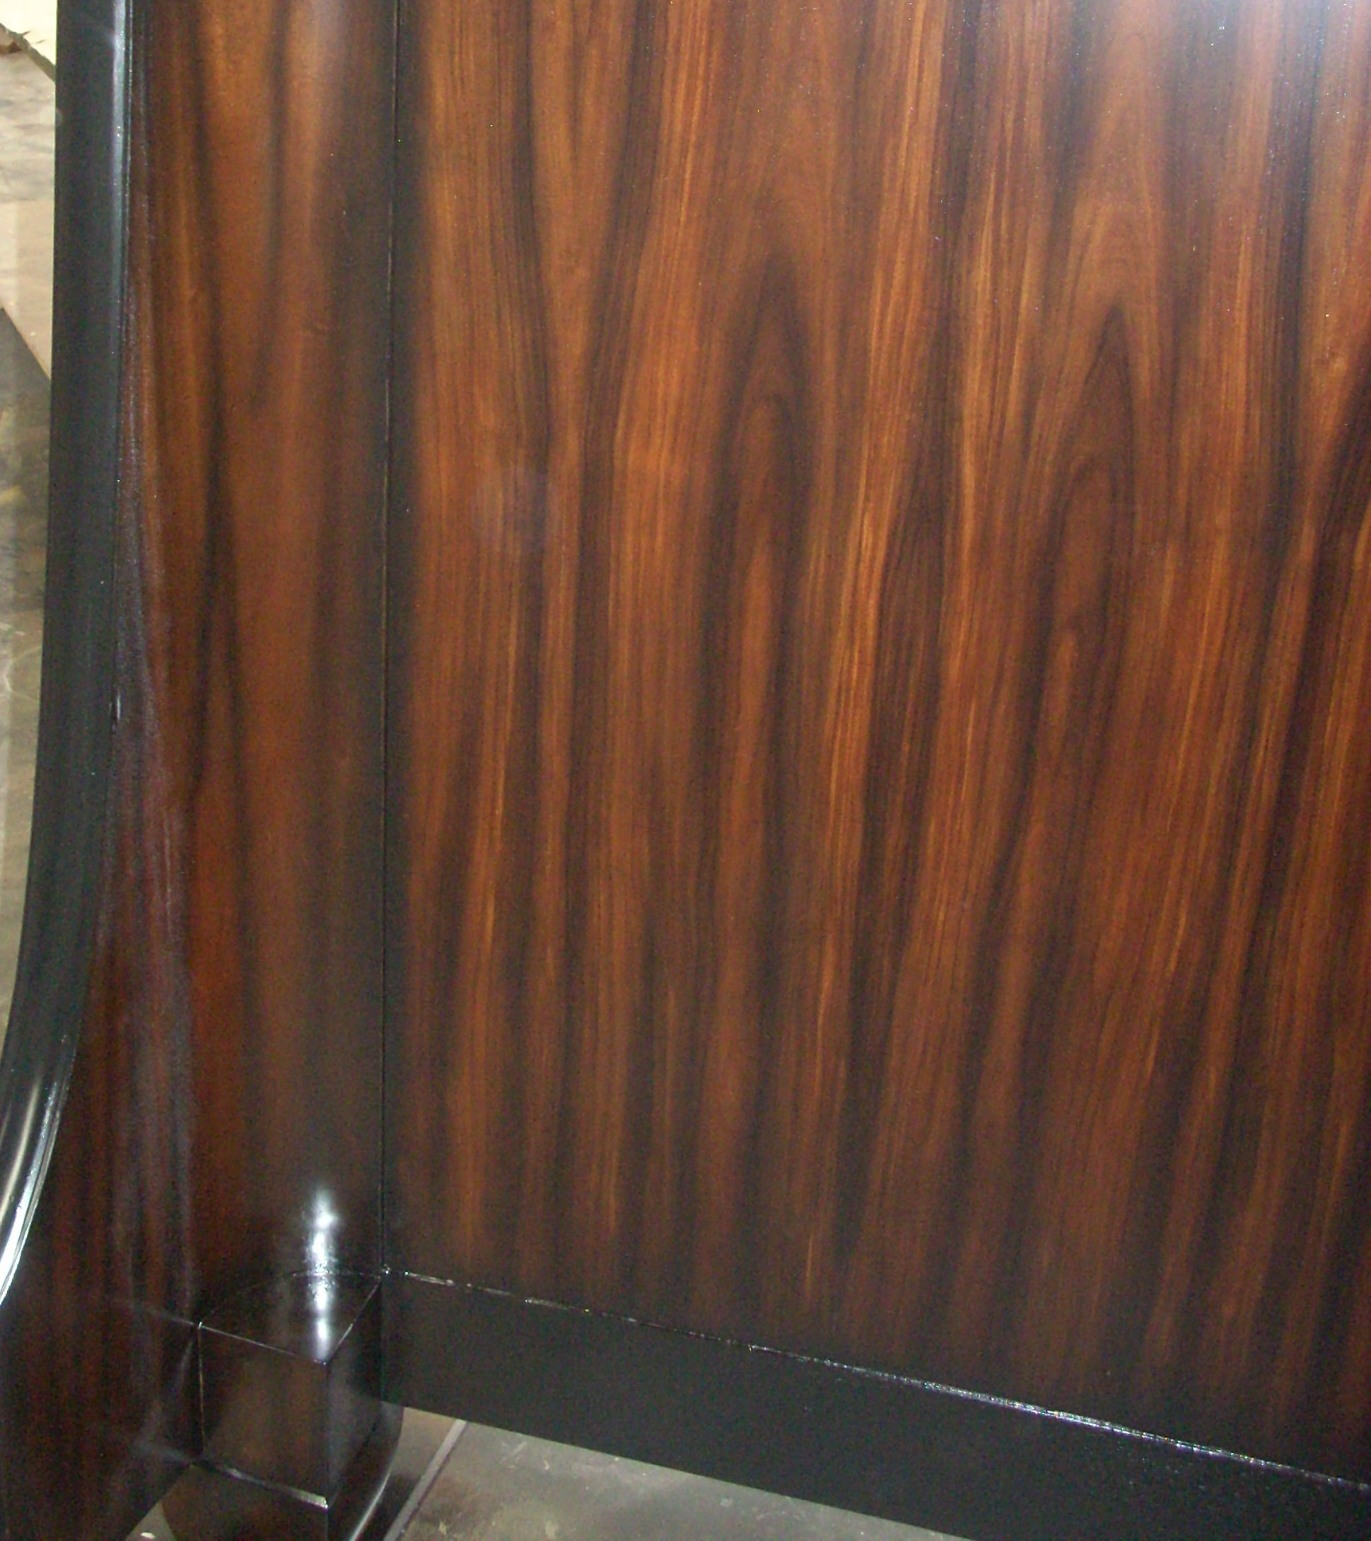 wisno wood furniture finishing: Pad stain application in the wood